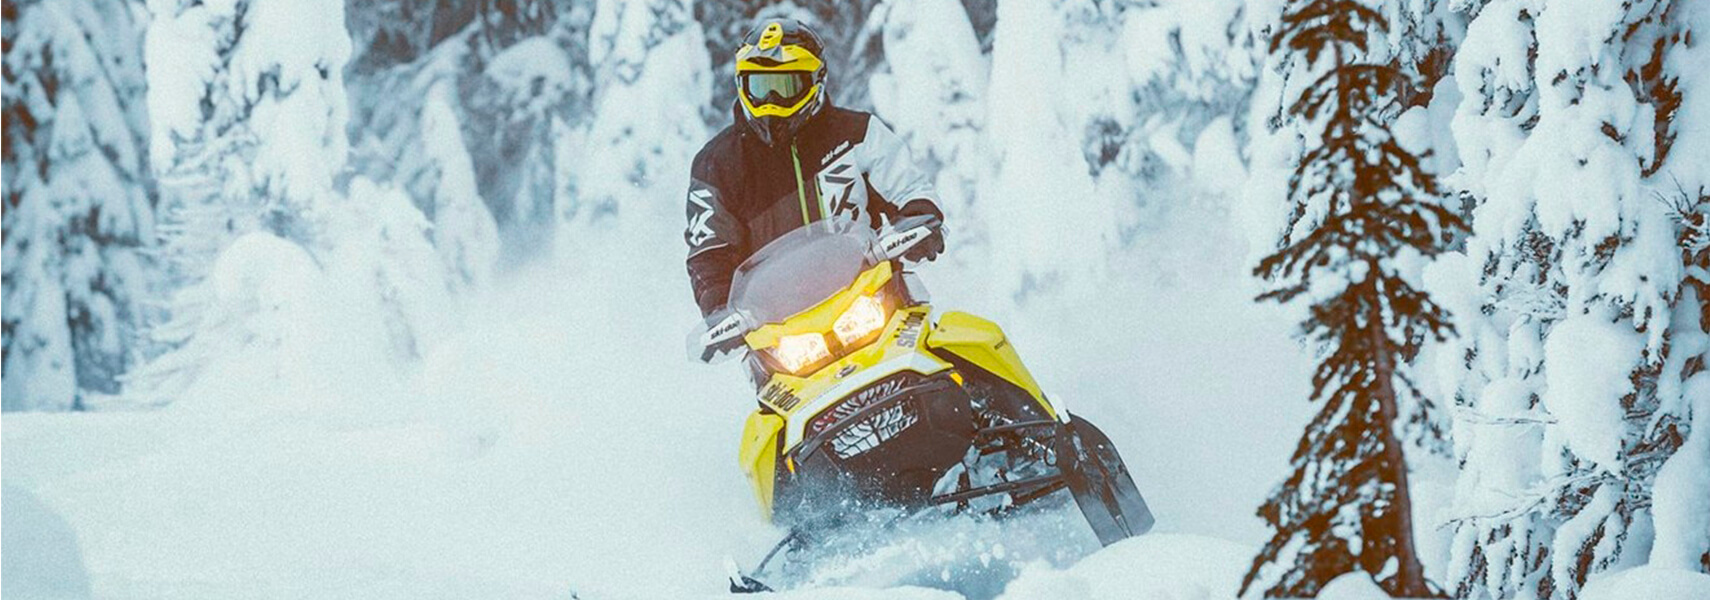 Ski-Doo - 2020 Backcountry X